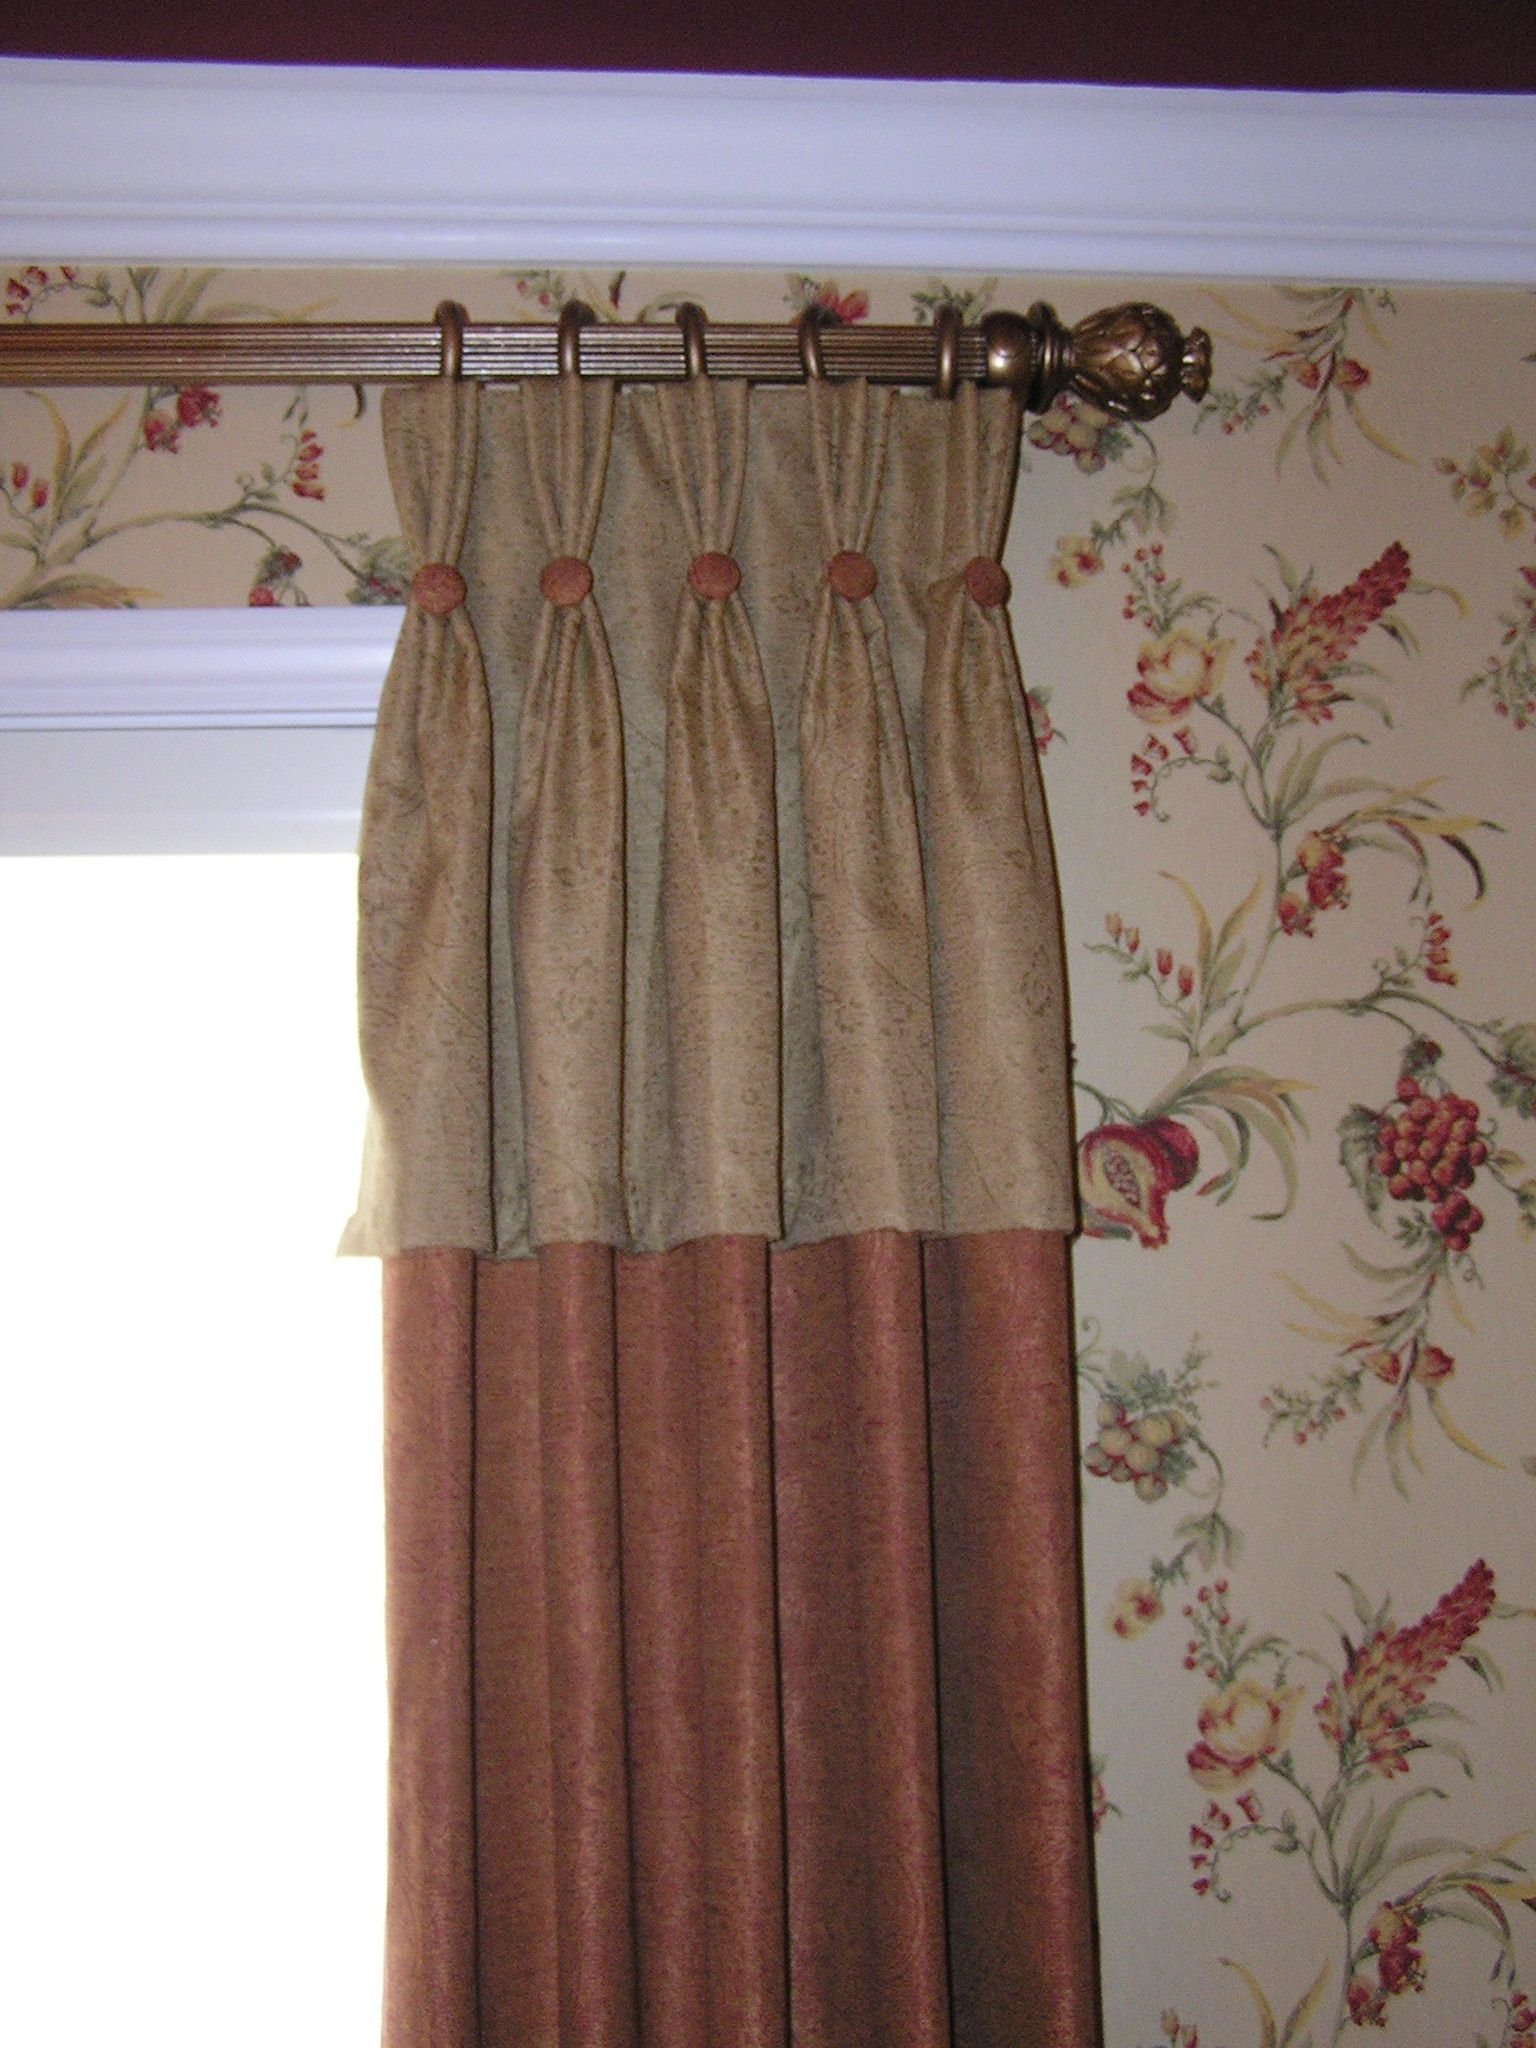 Custom drapery panel with attached valance and button detail